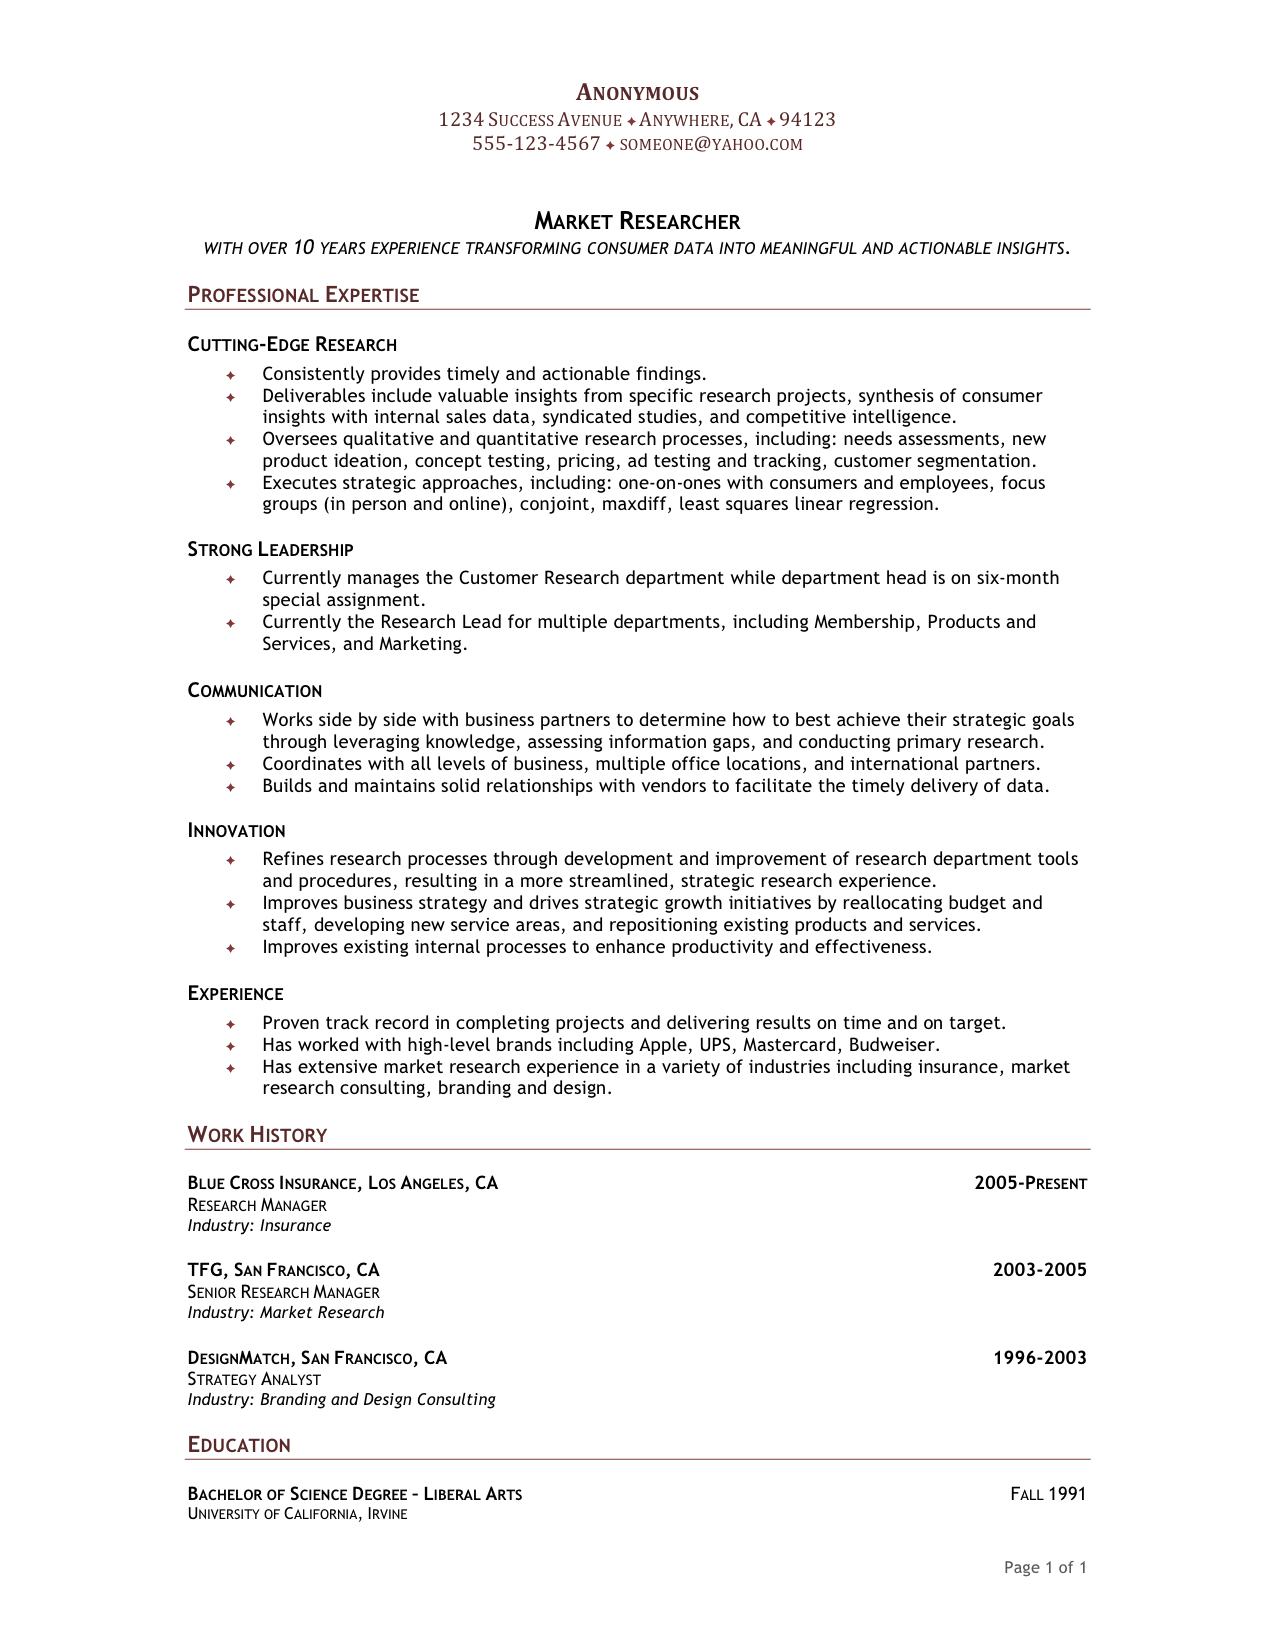 resume samples  chronological vs function resume formats  u2013 robin to the rescue